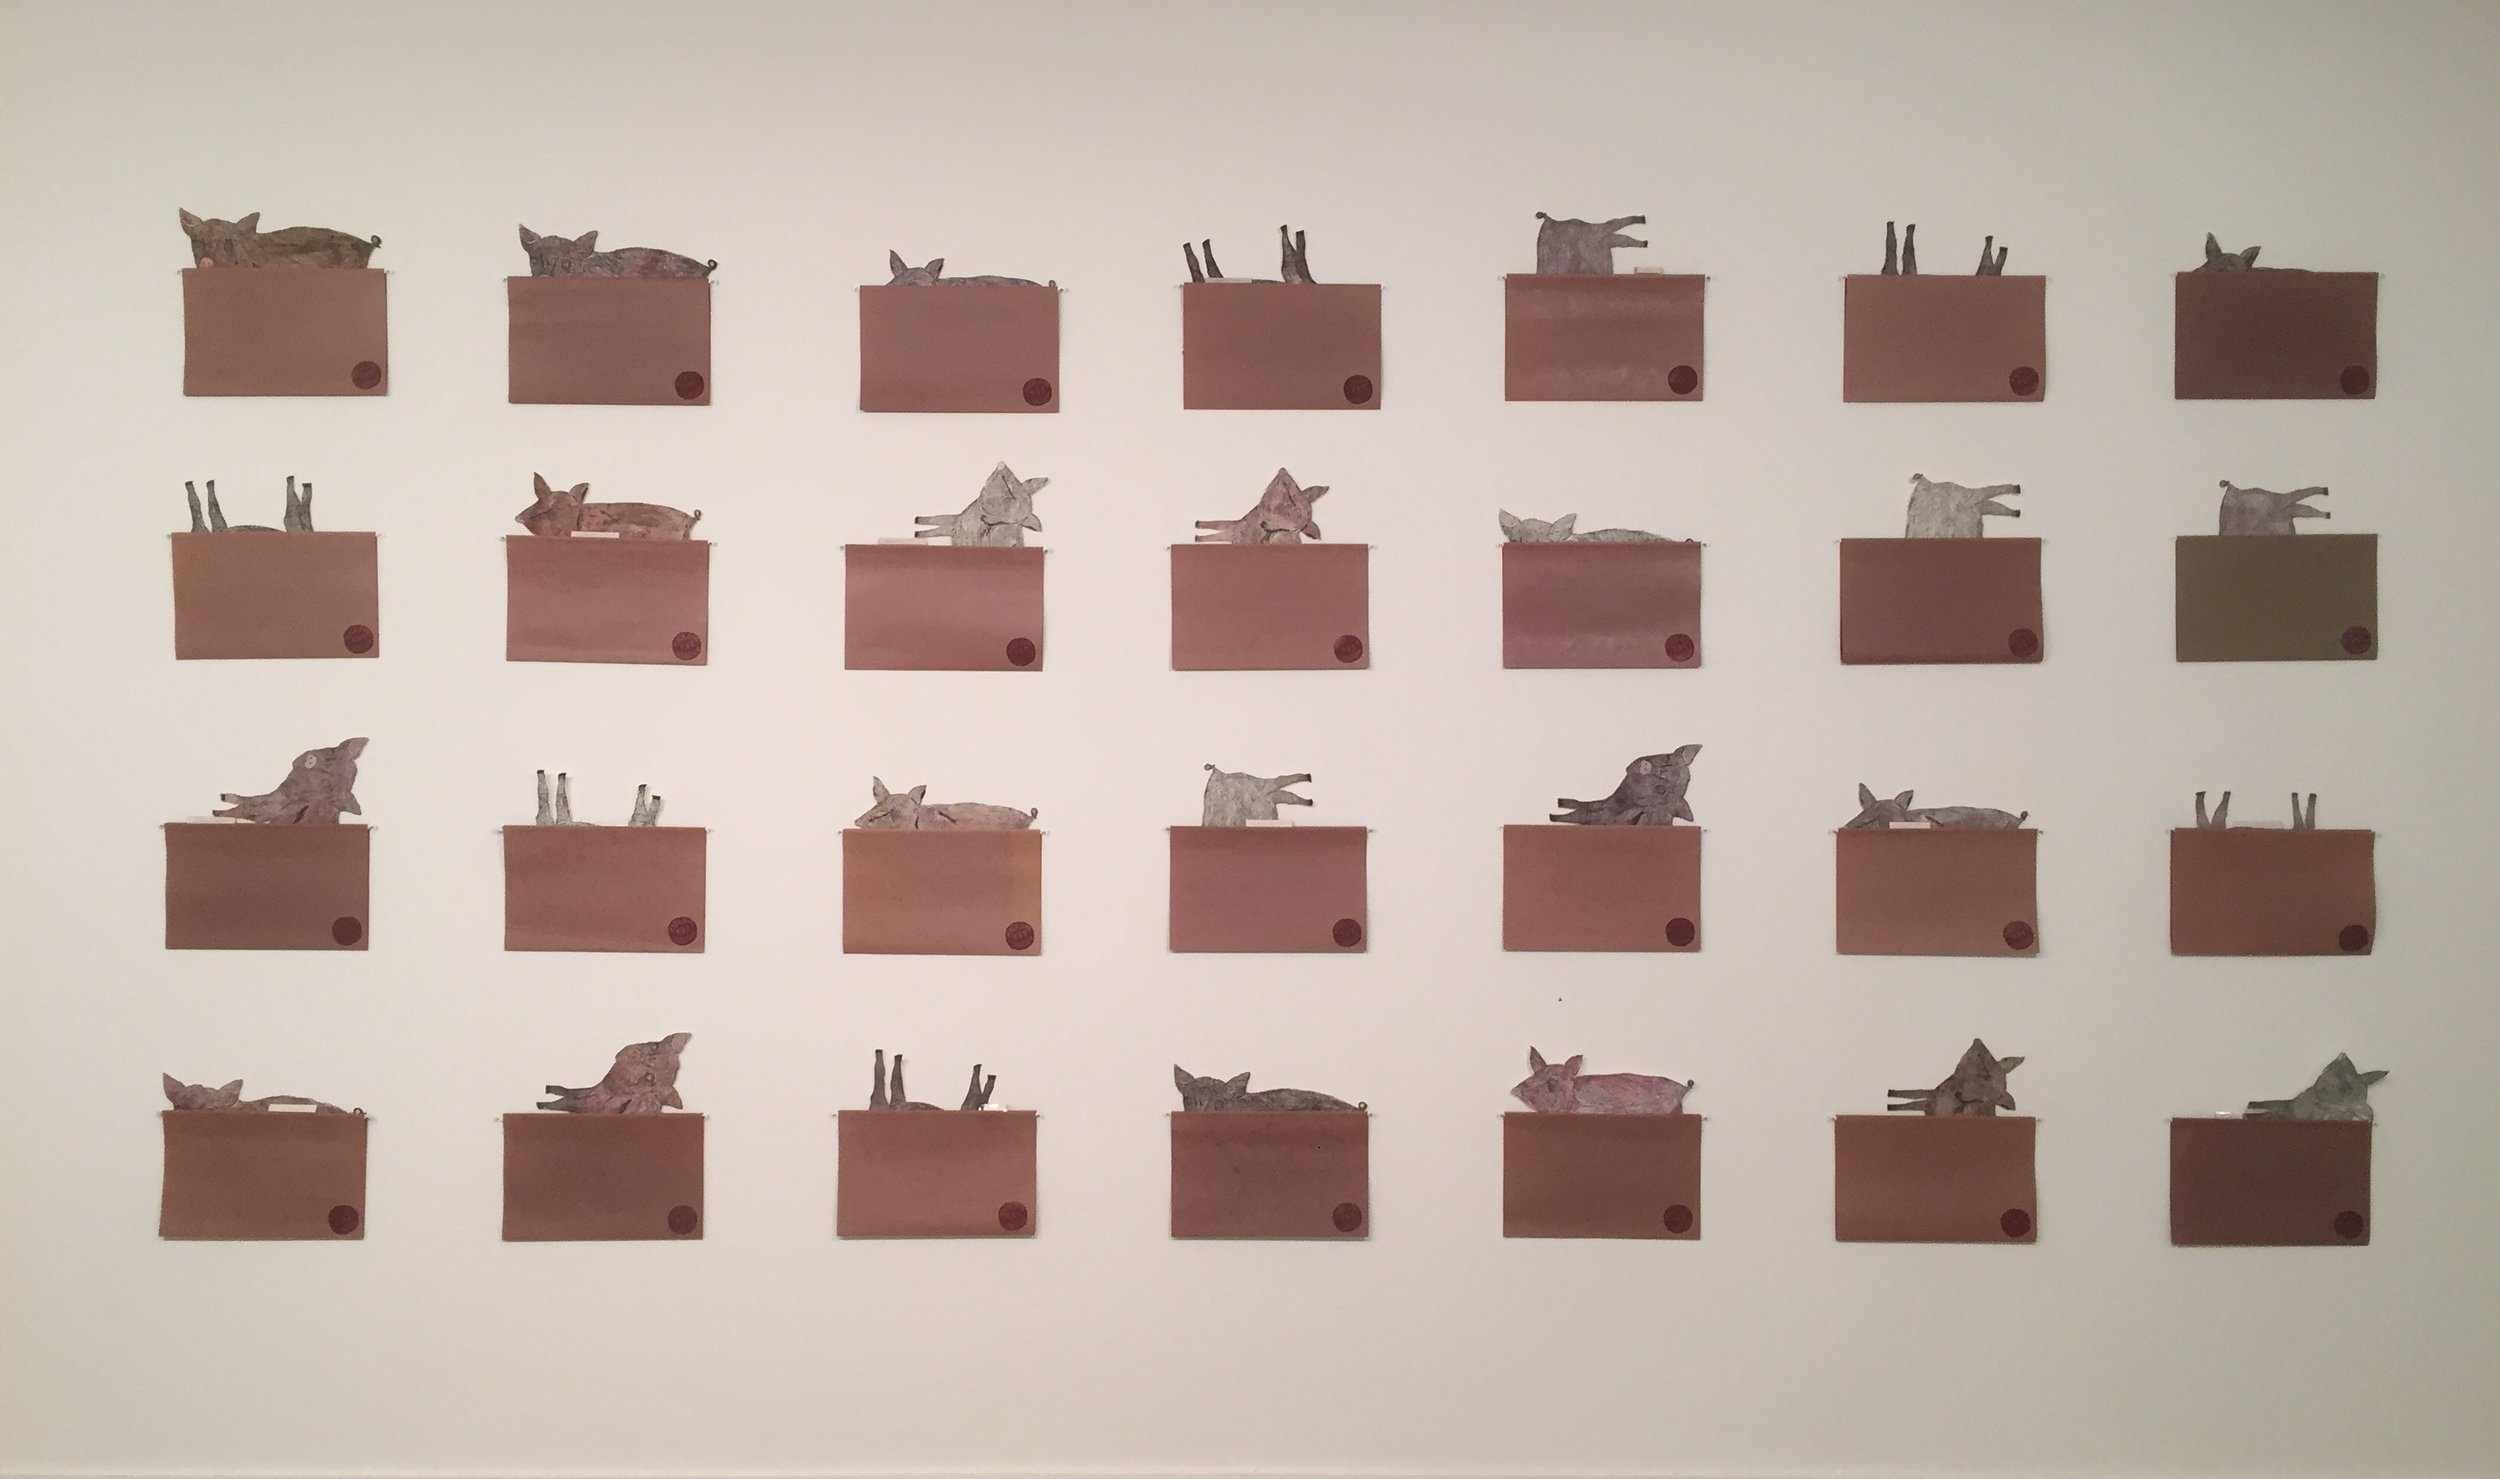 Adoption Files (1995, 2007, 2019)    Site specific installation— dimensions variable, 8' x 16', April 2018, hand colored intaglio etchings + linoleum block relief prints; brown manilla files with labels on okawara paper